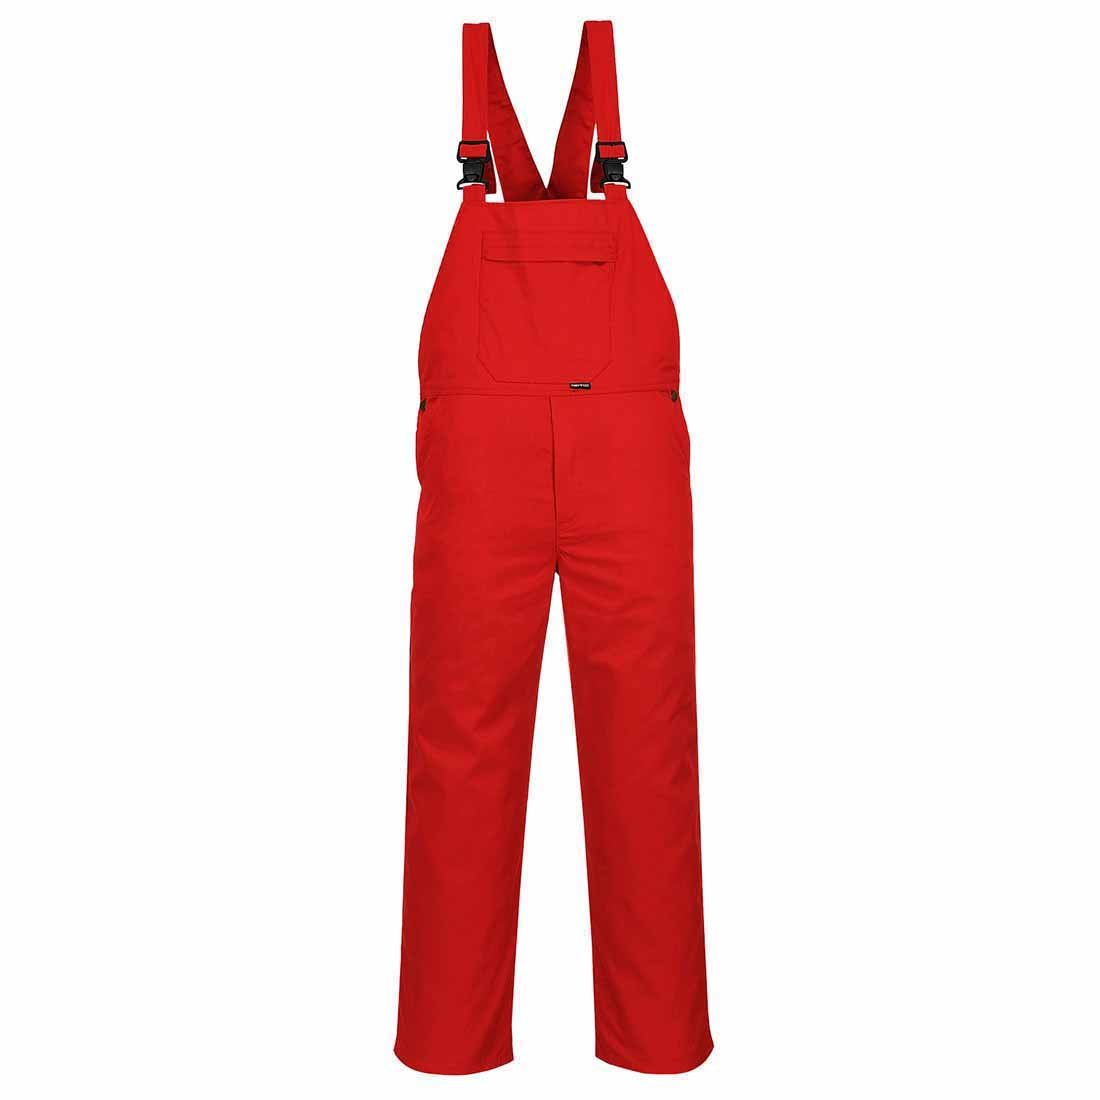 Bib and Brace Work Overalls for men - Basic - Red Portwest